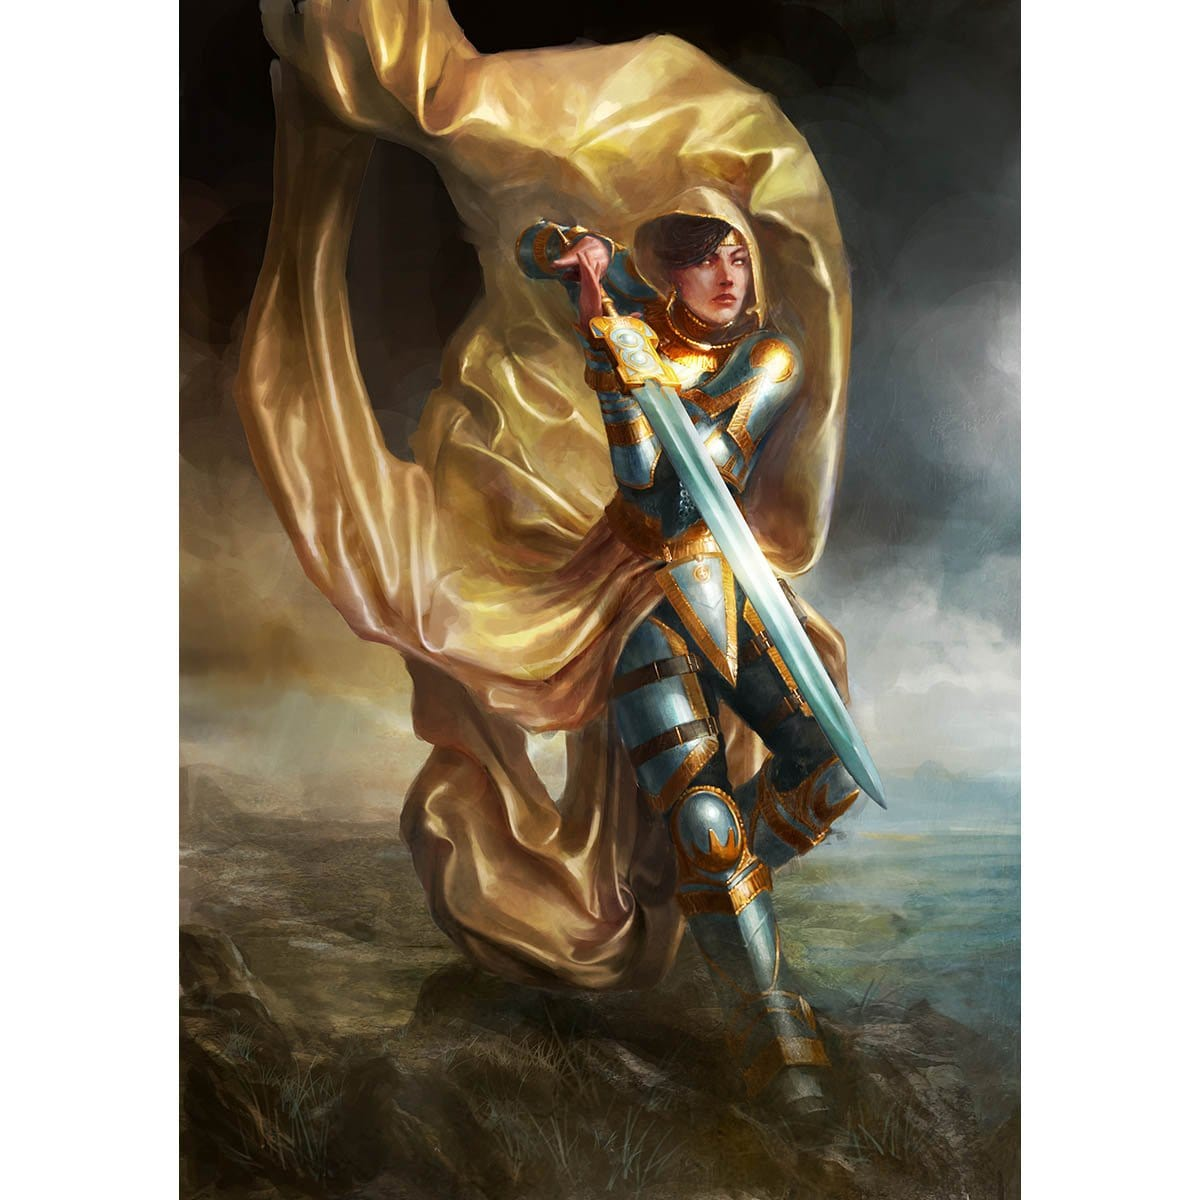 Elspeth, Knight-Errant Print - Print - Original Magic Art - Accessories for Magic the Gathering and other card games